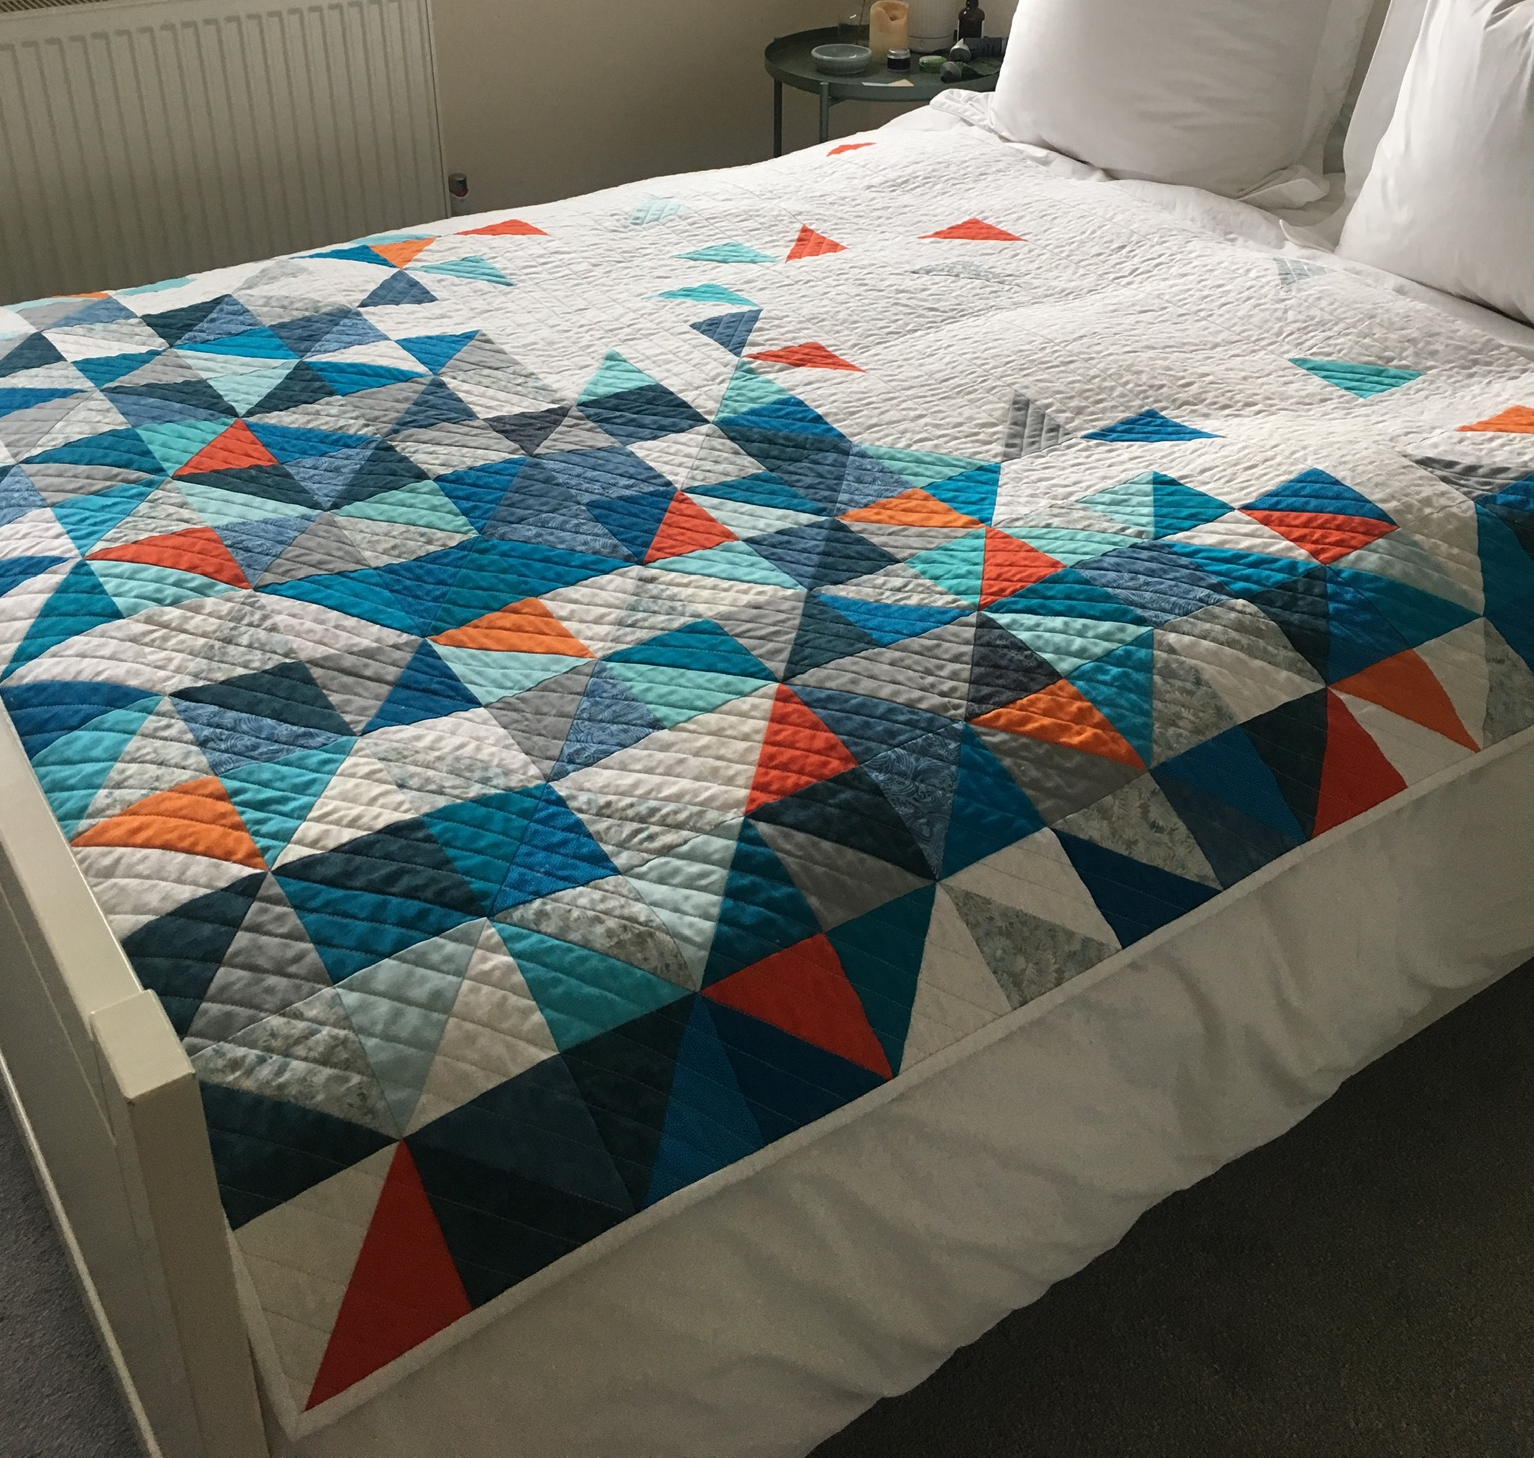 Teresa's latest quilt inspired by a picture on Pinterest